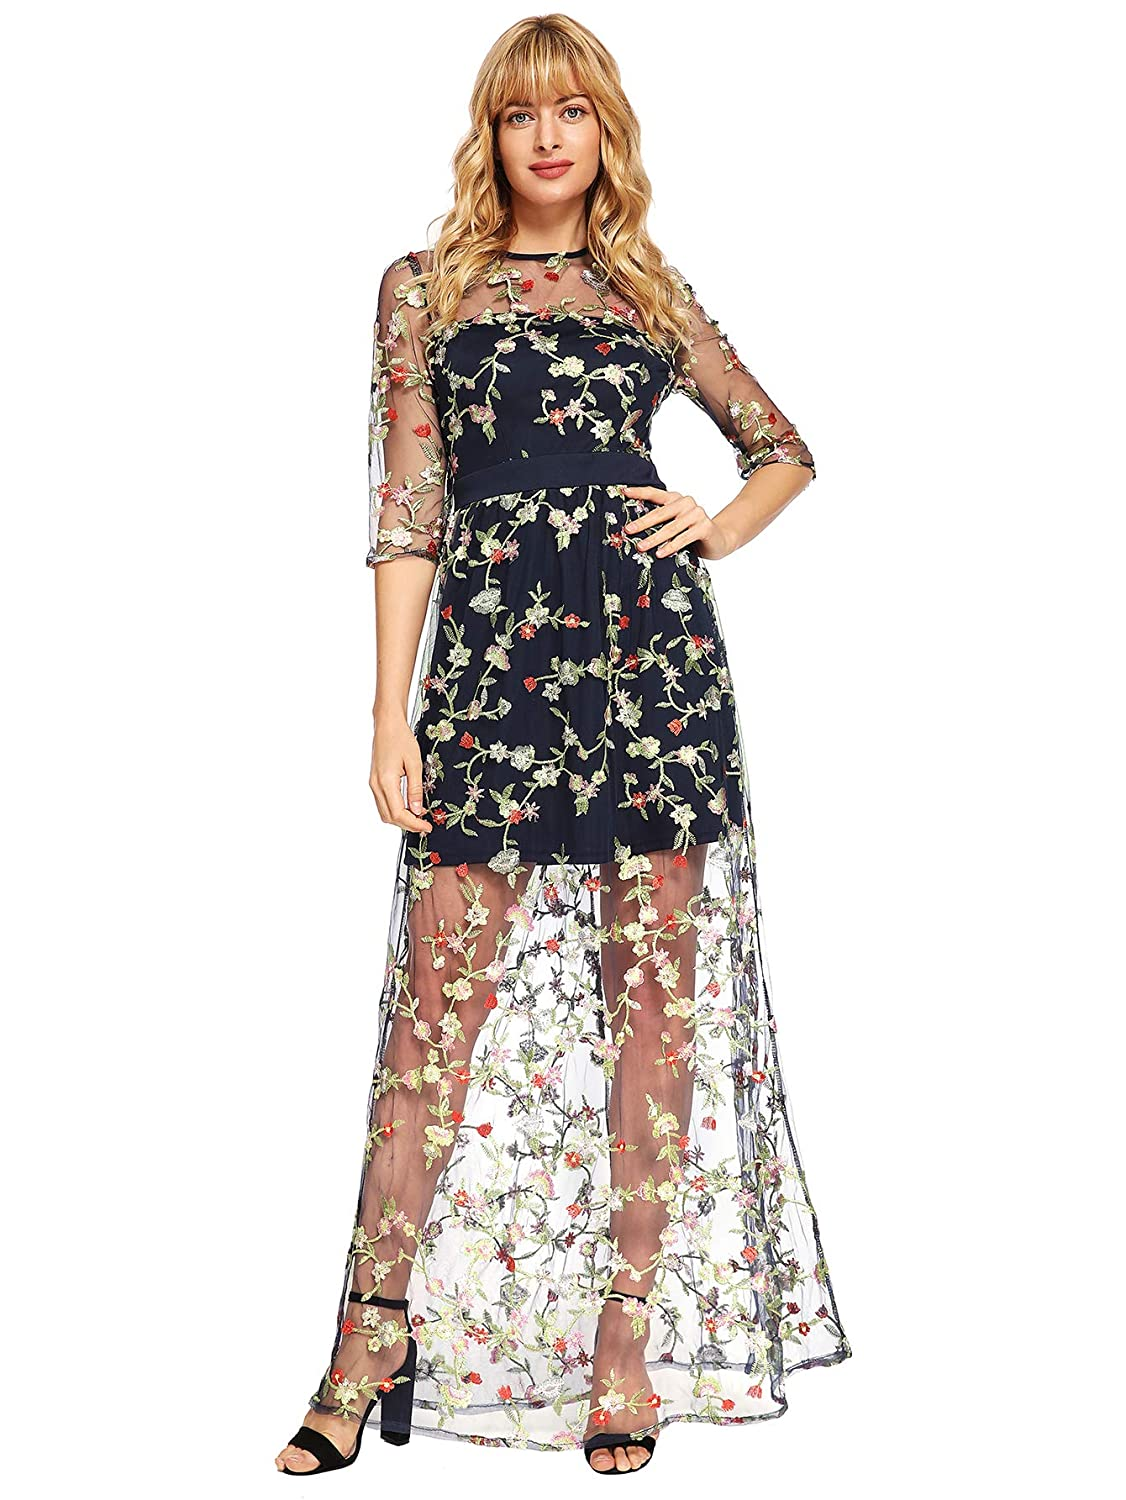 74c55a804f DIDK Women s A Line Floral Embroidery Mesh Sheer Evening Cocktail Dress at  Amazon Women s Clothing store